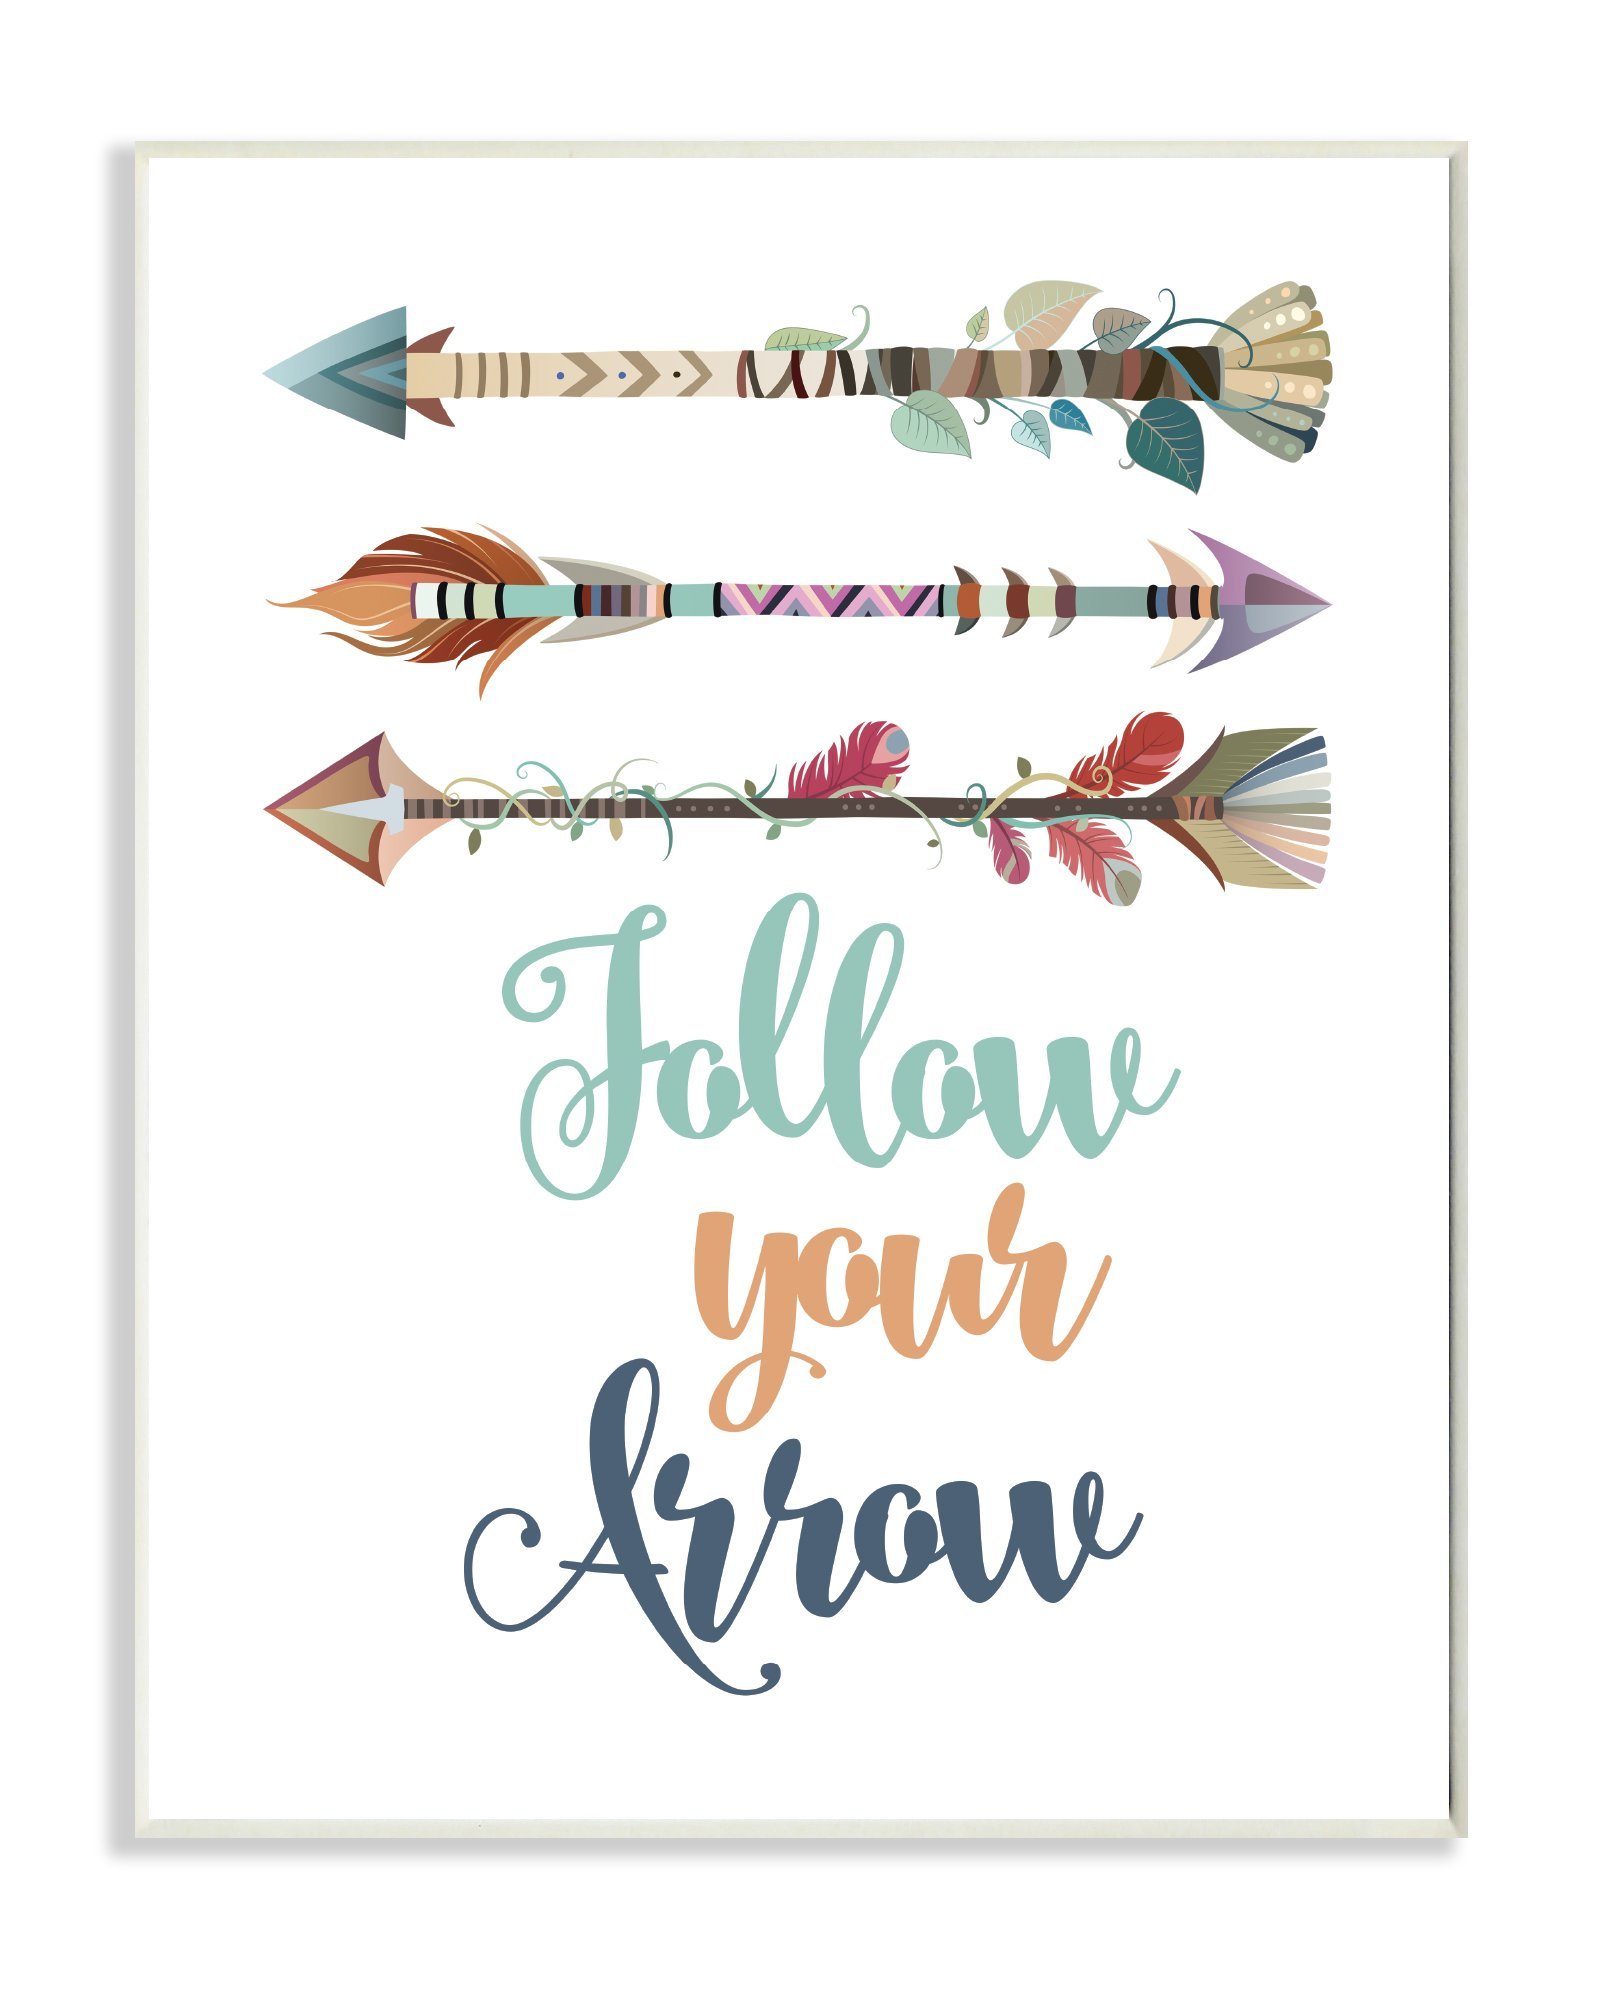 Stupell Home Décor Follow Your Arrows Wall Plaque Art, 10 x 0.5 x 15, Proudly Made in USA